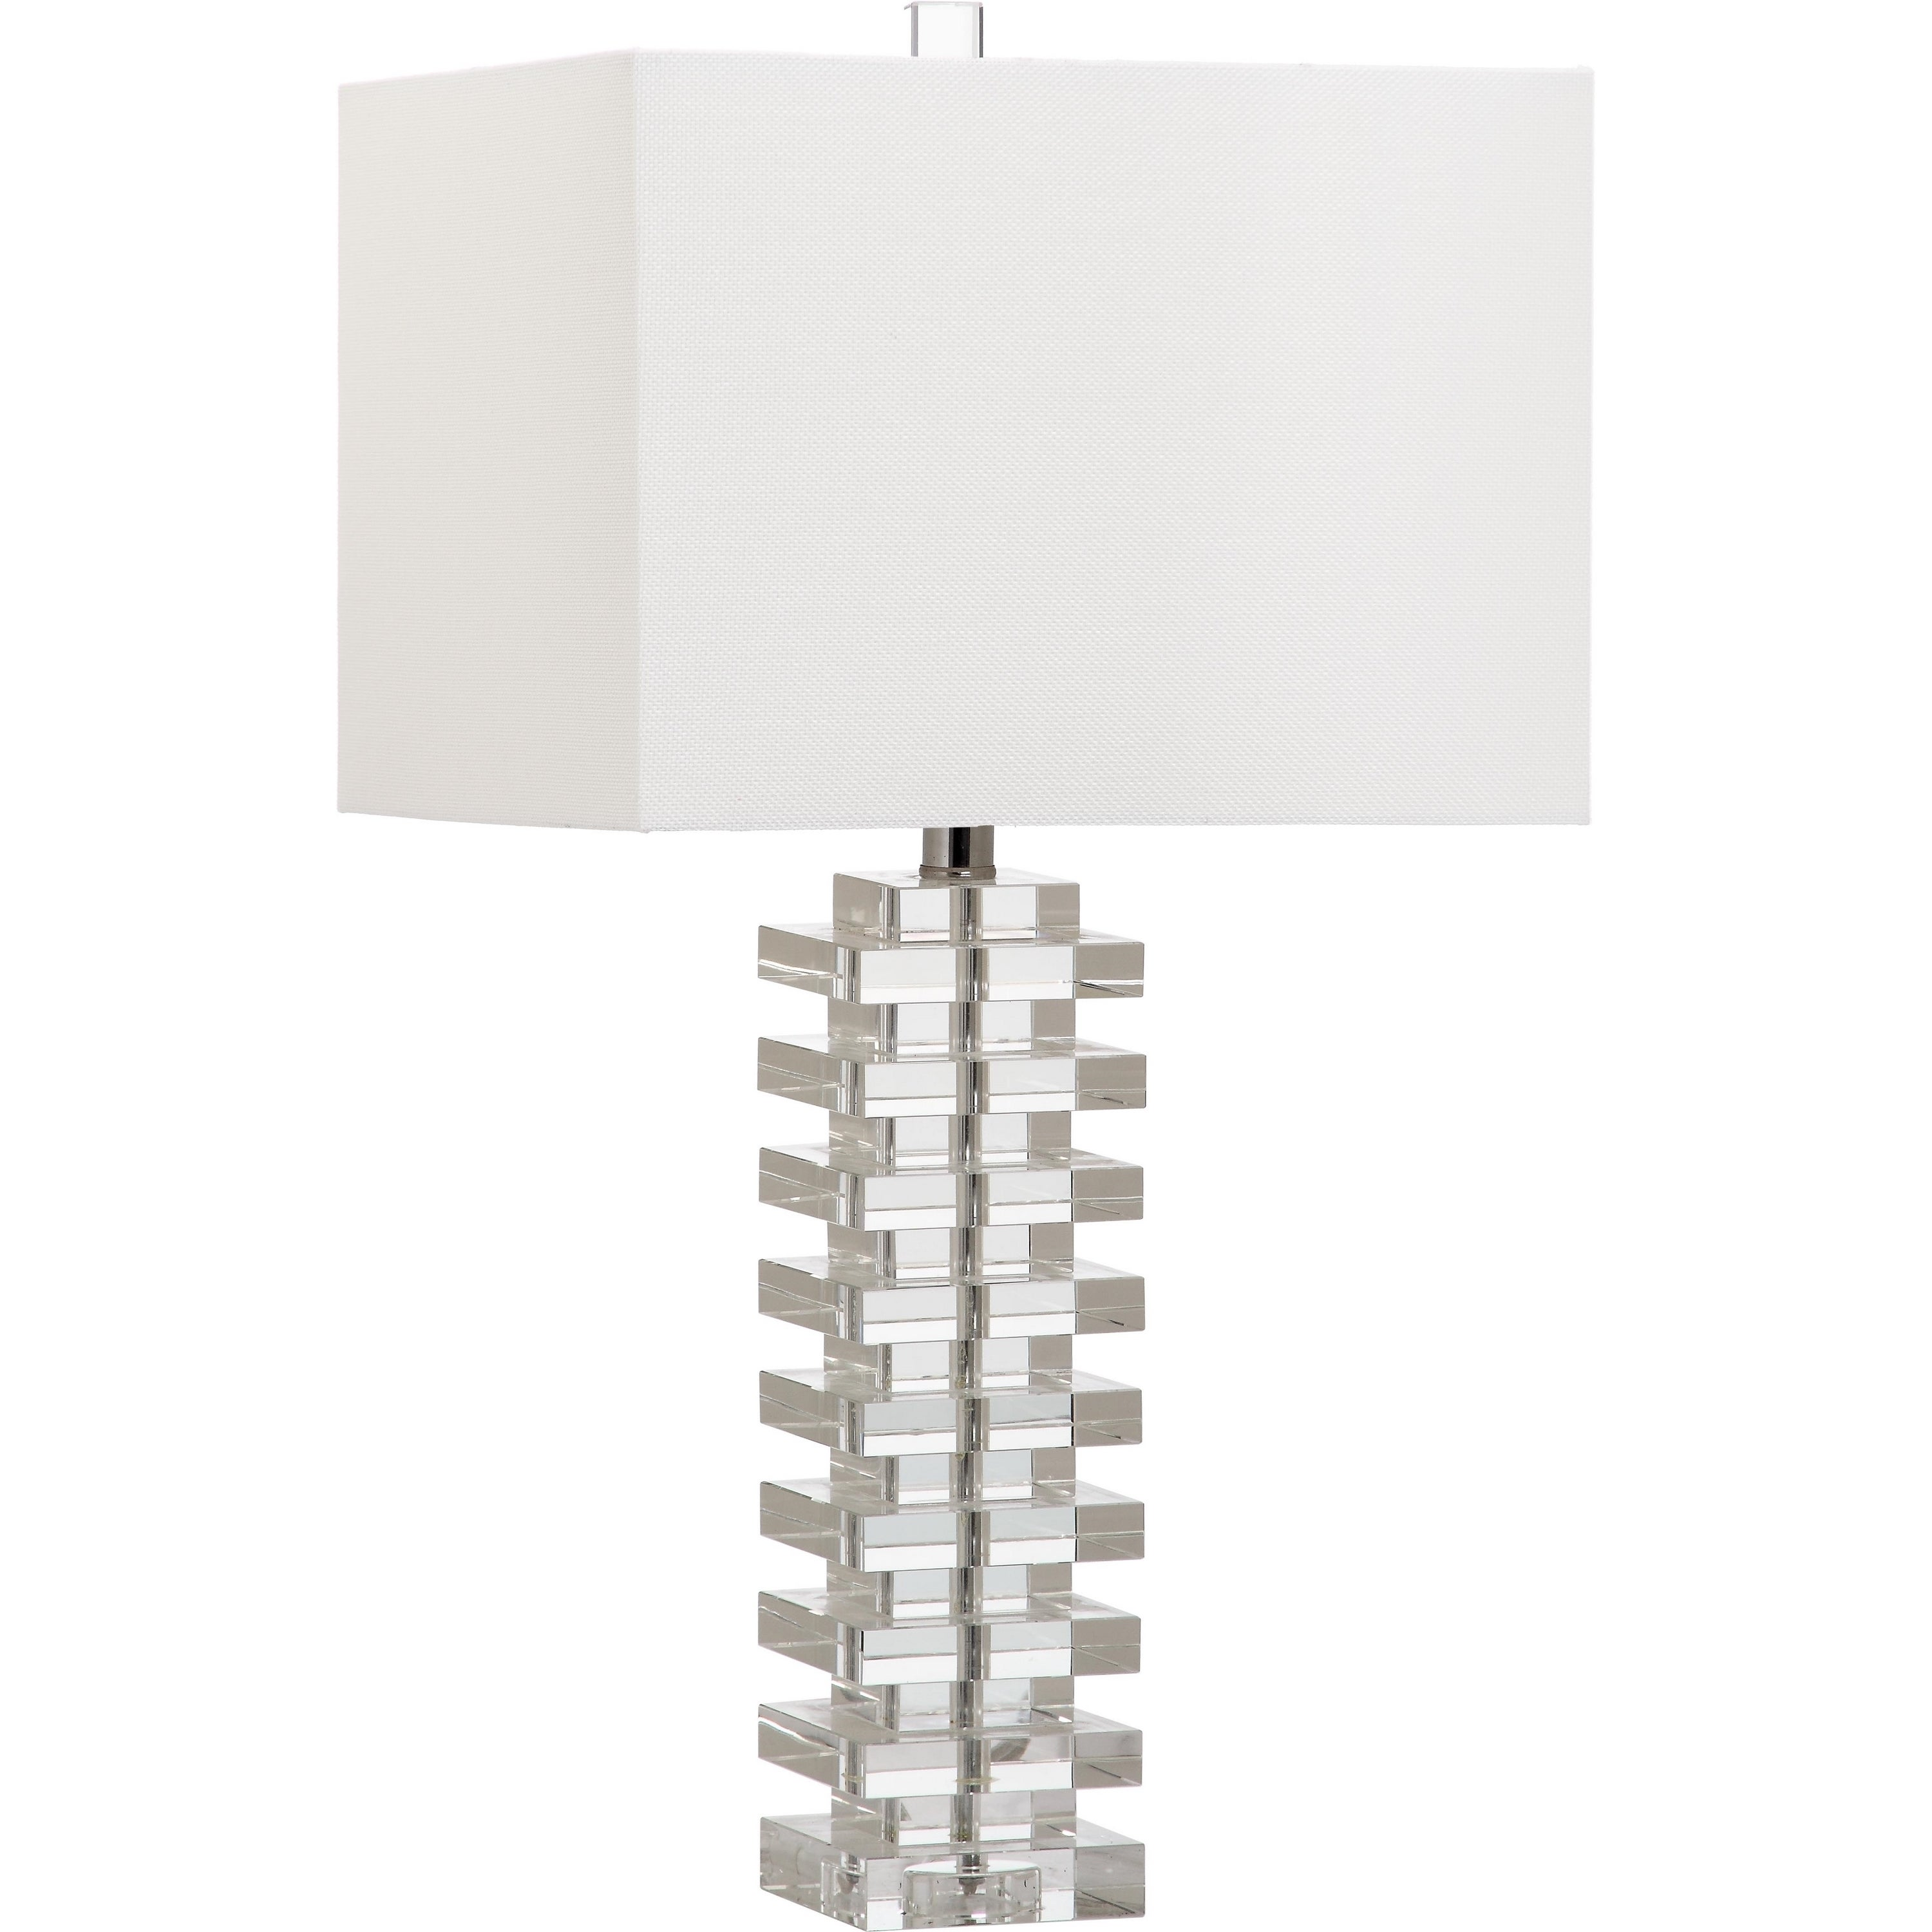 Safavieh lighting 265 inch swift clear table lamp safavieh lighting 265 inch swift clear table lamp free shipping today overstock 16707733 aloadofball Gallery